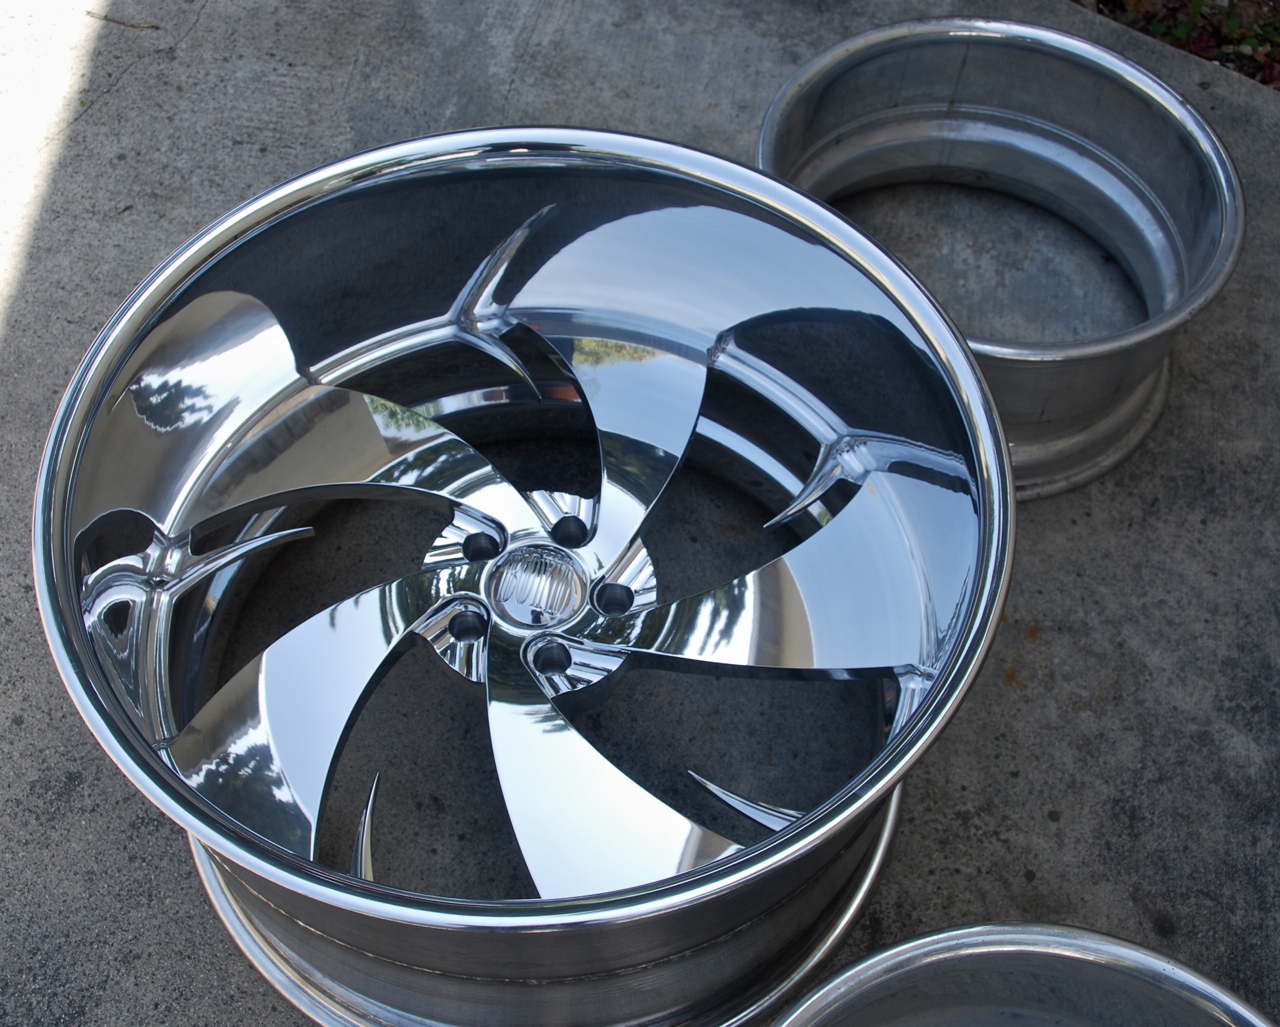 30 Inch Rims For Sale For A 2015 Cadillac Esv Autos Post